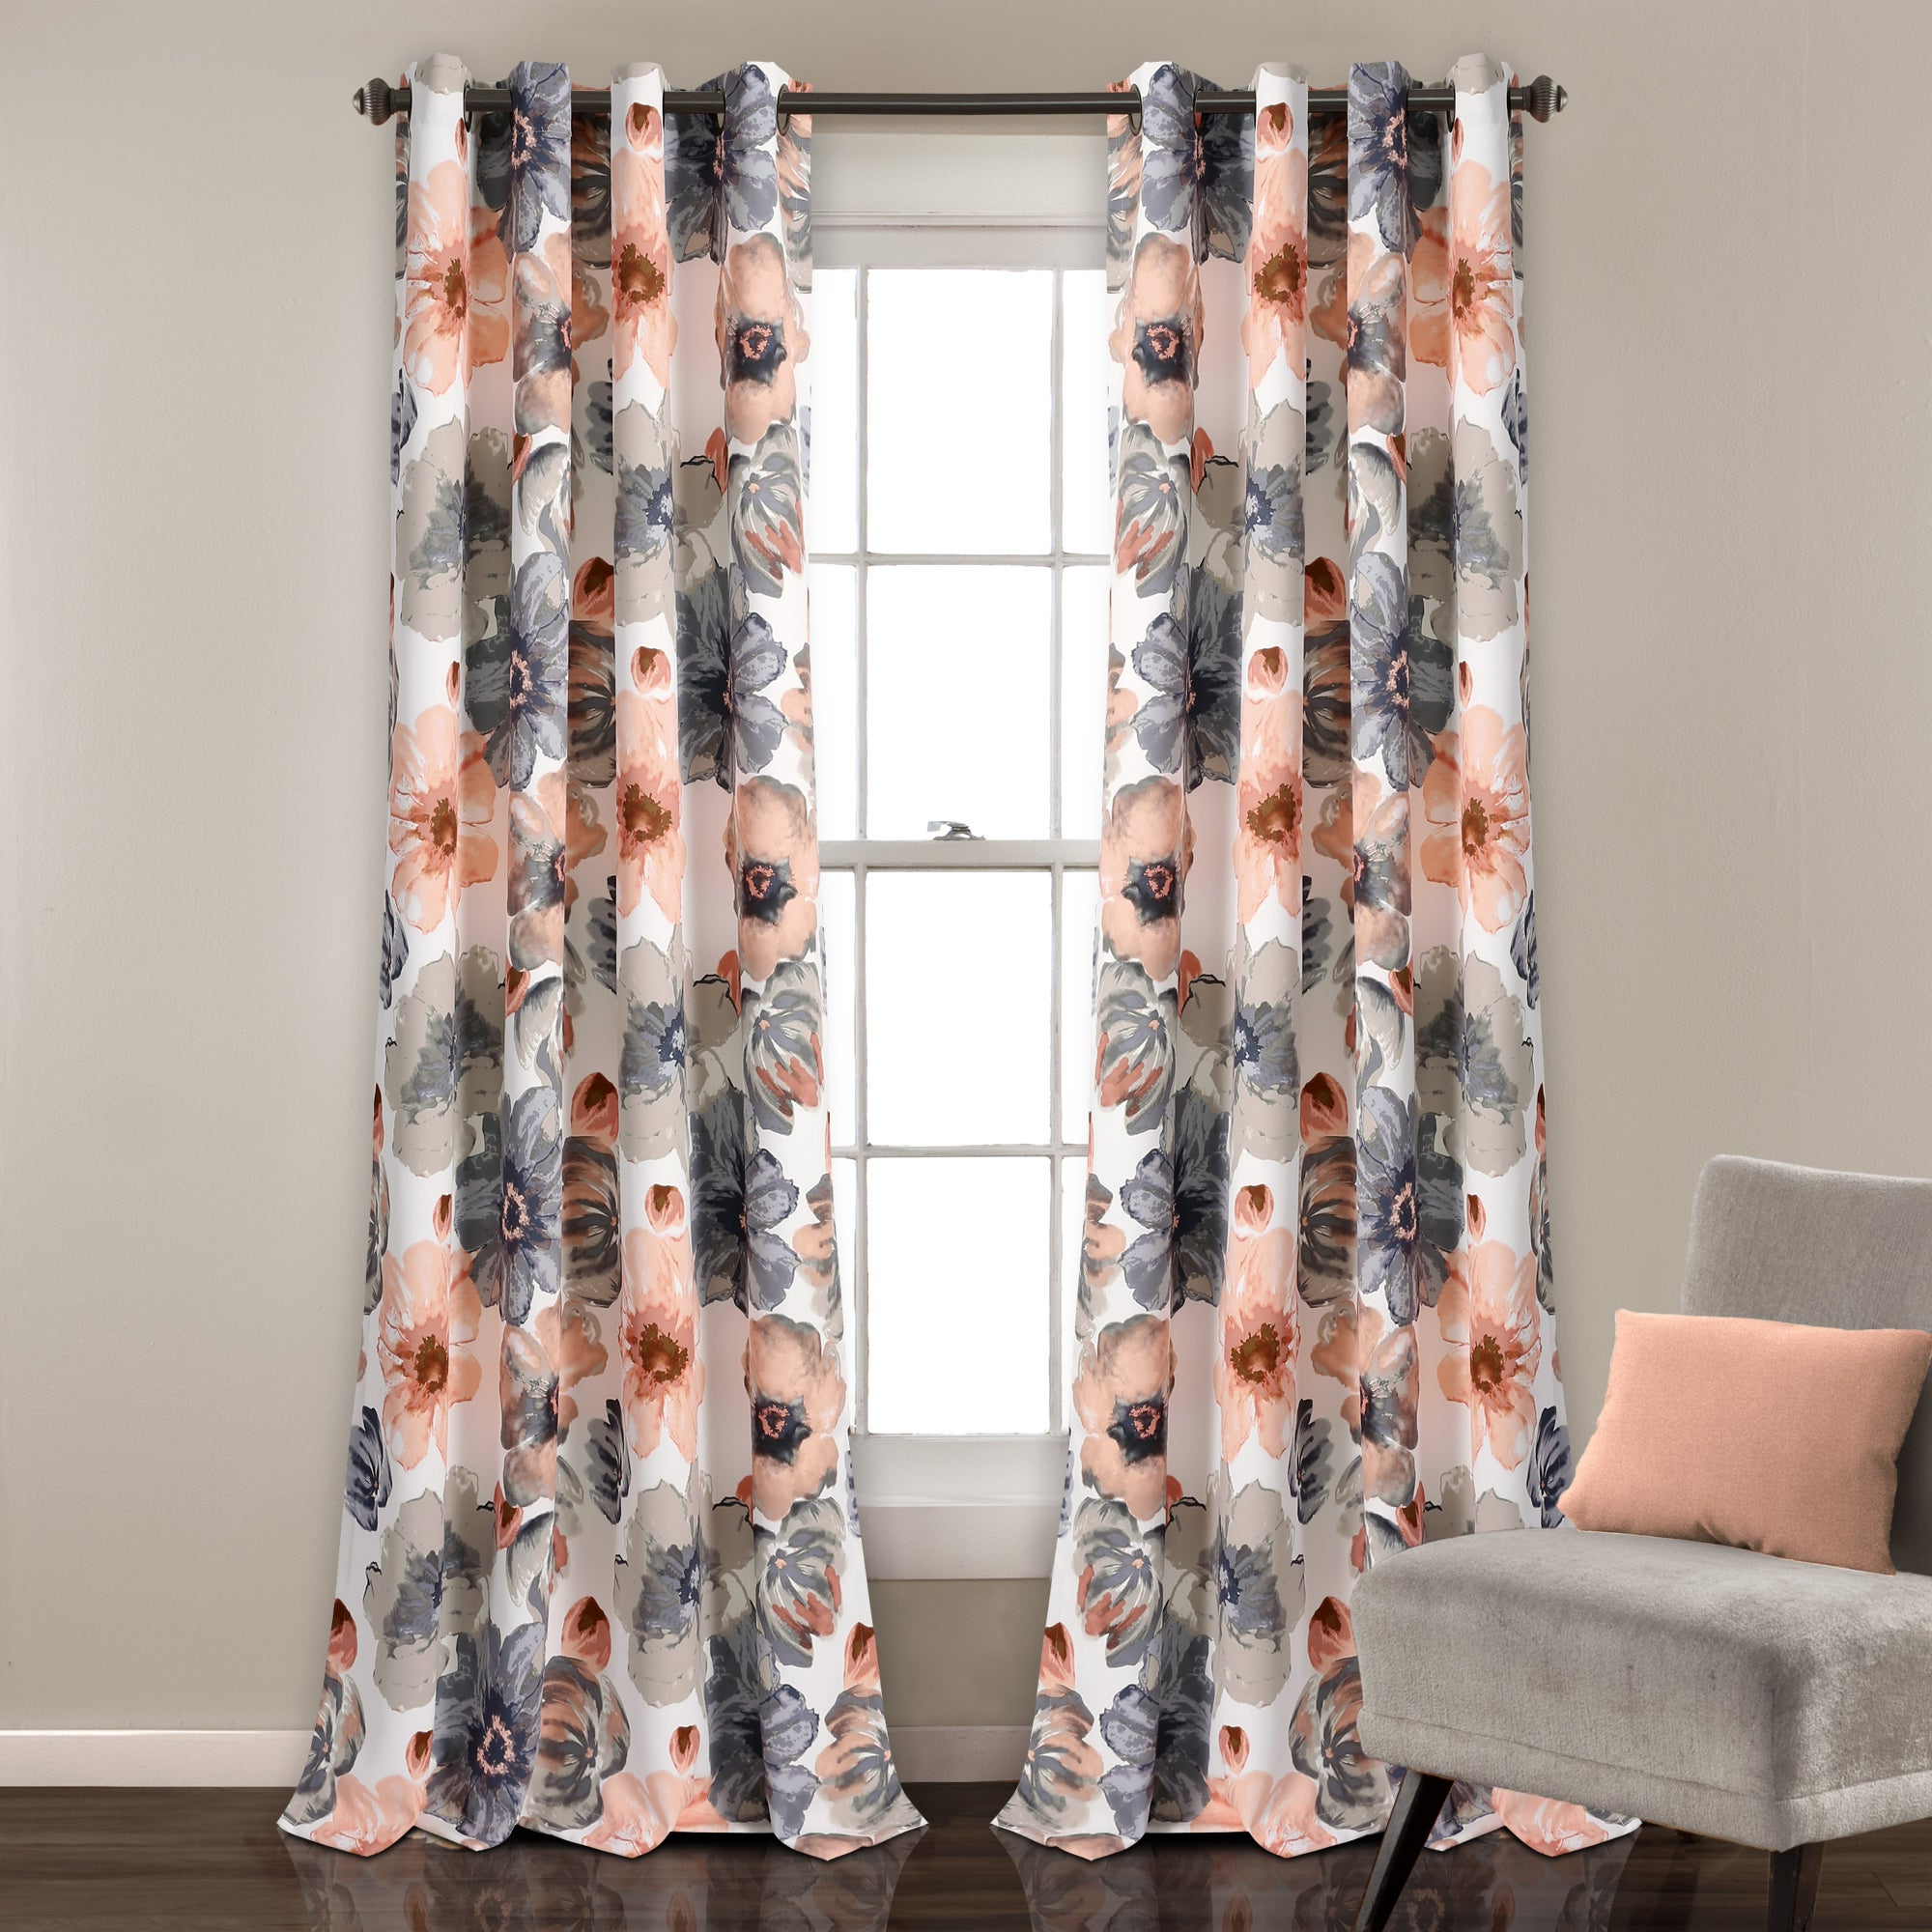 Lush Decor Leah Room Darkening Curtain Panel Pair Pertaining To 2020 Leah Room Darkening Curtain Panel Pairs (Gallery 1 of 20)